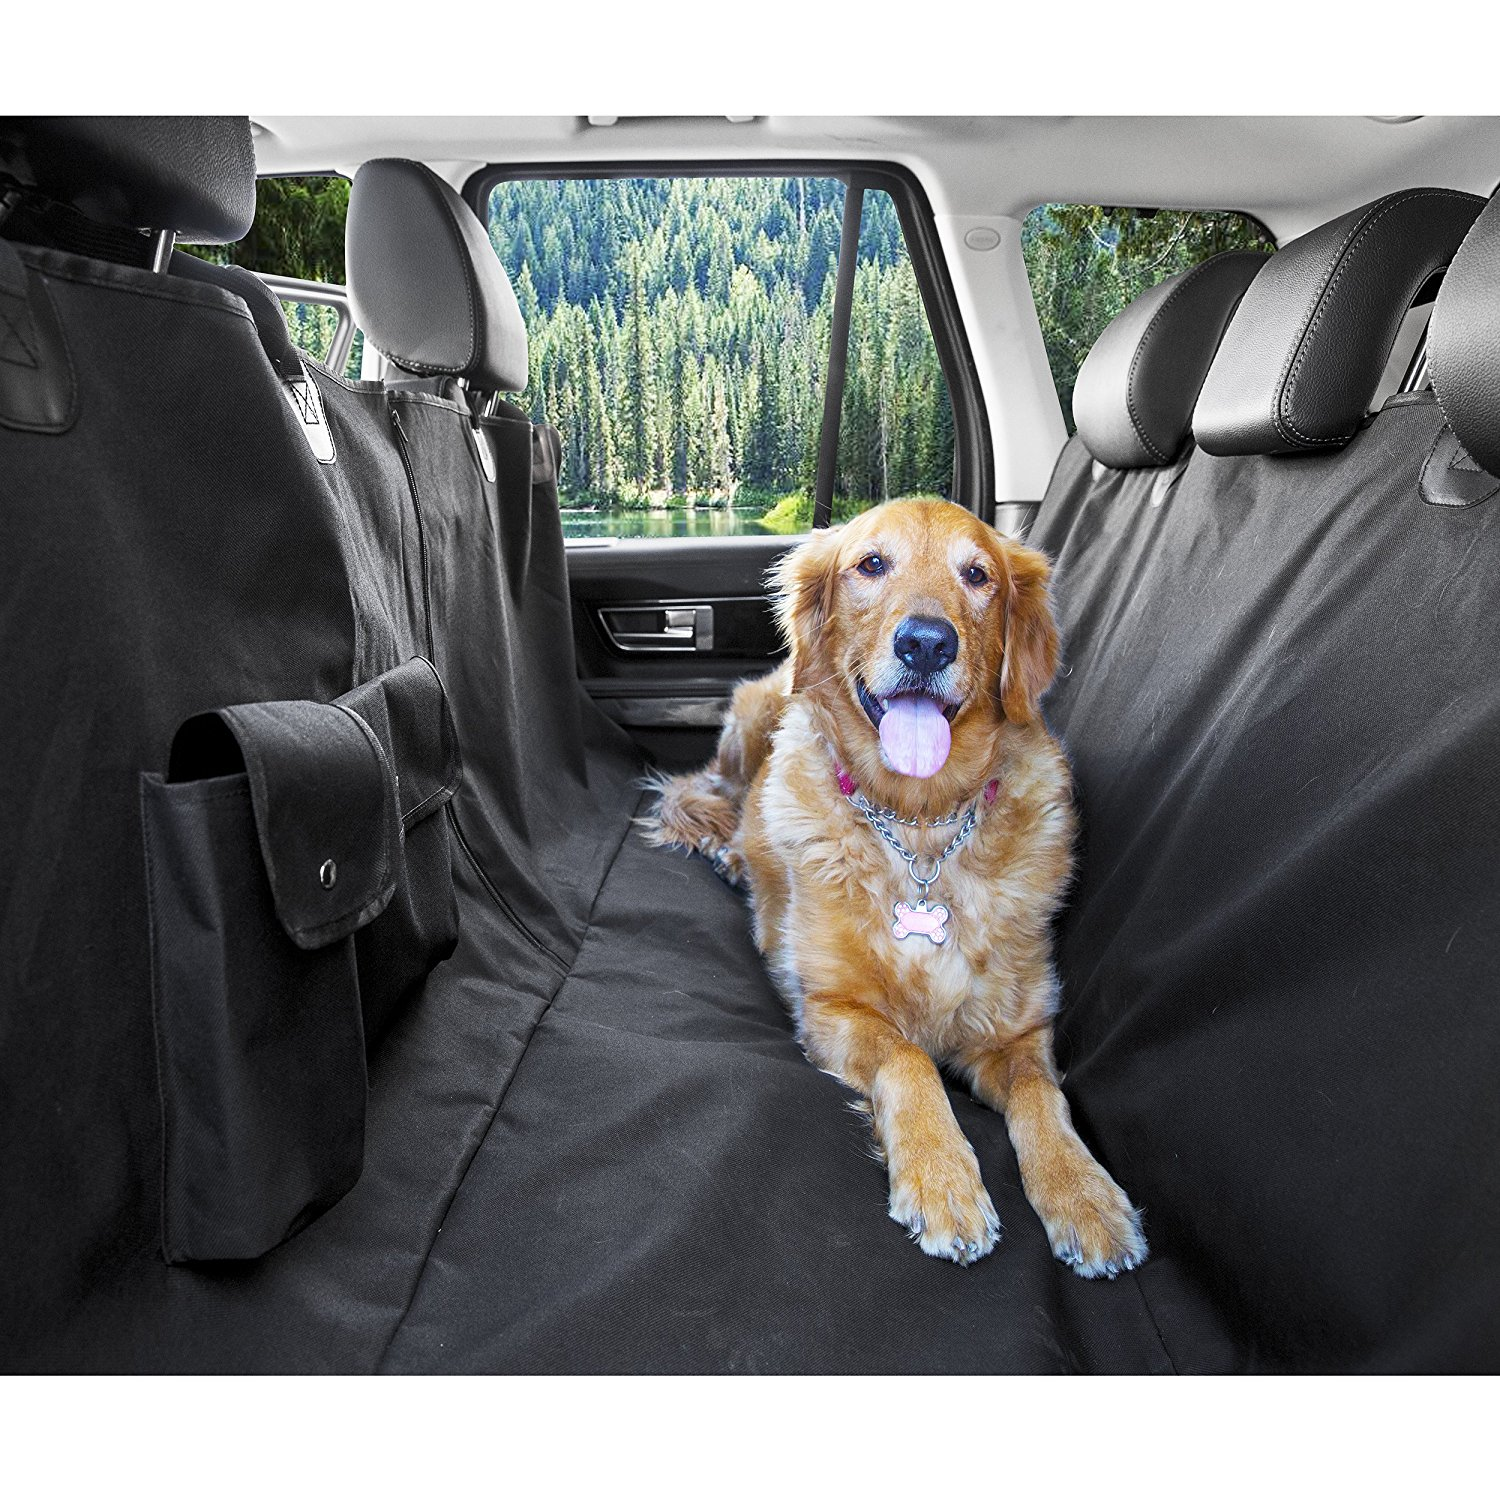 Medium image of mdstop new multi function car pet seat cover with pockets zipper hammock rear back seat dog protector mat for cars trucks suvs in dog carriers from home